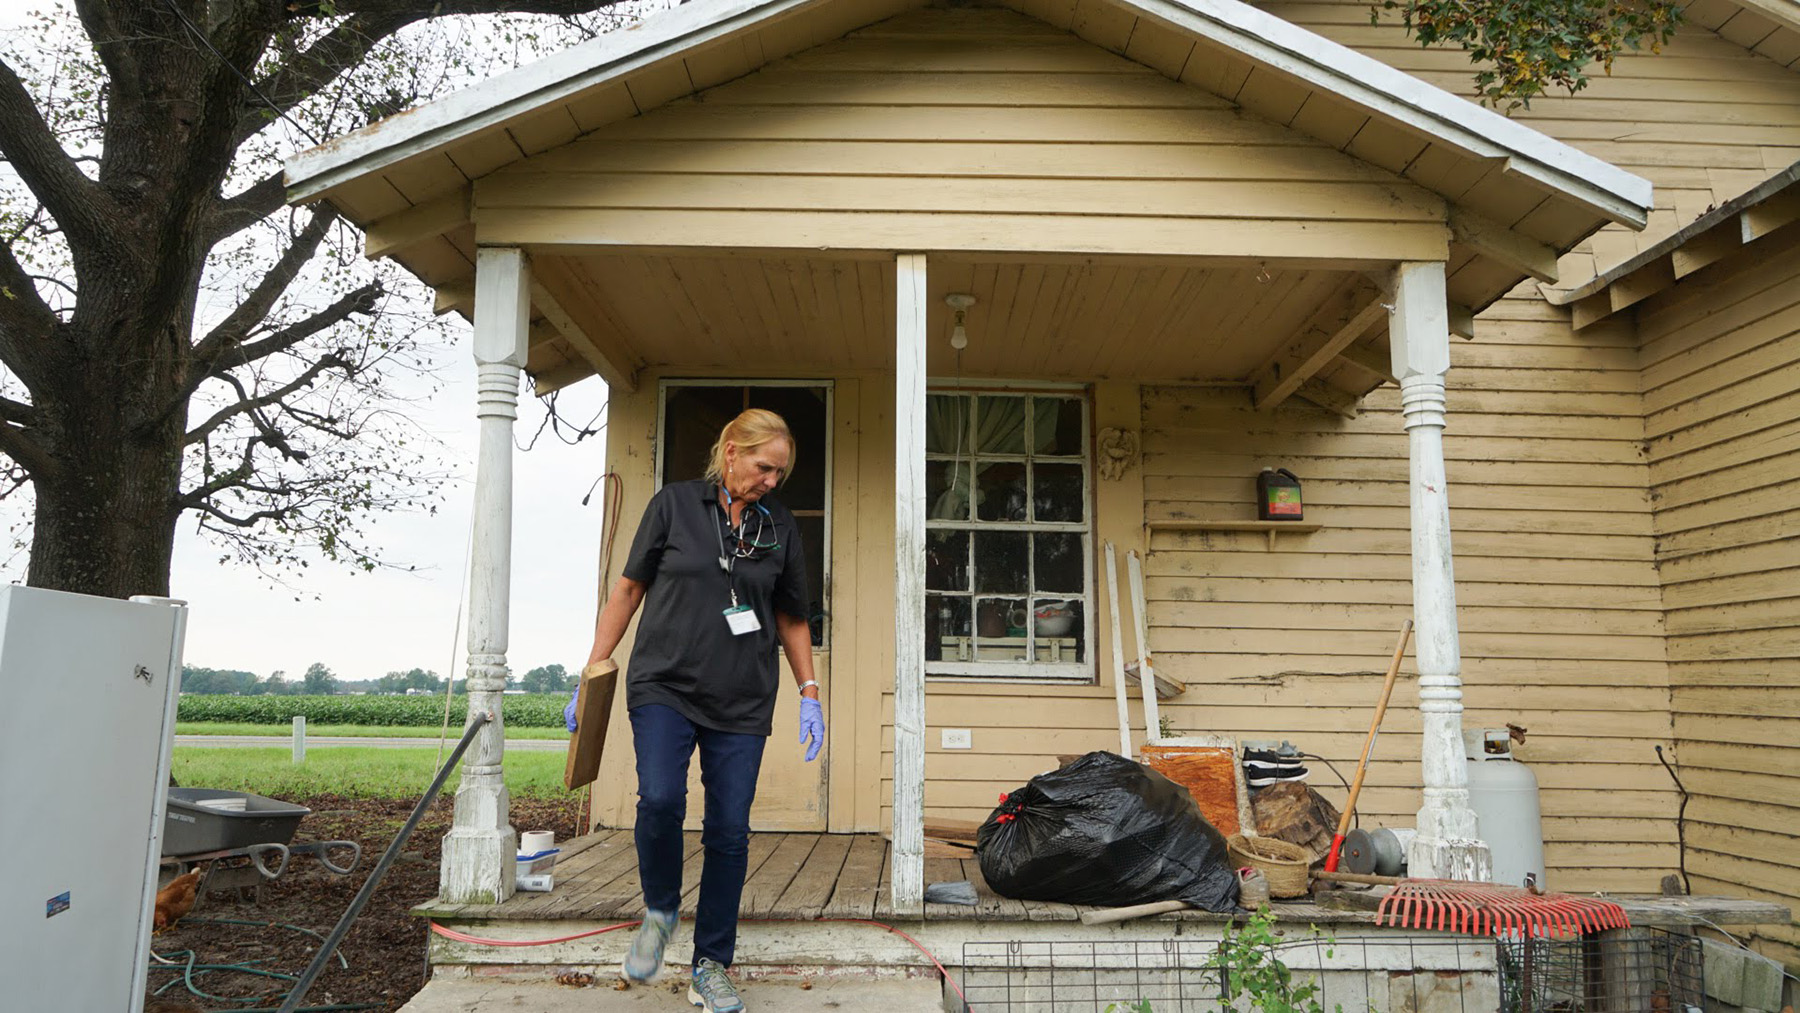 Nurse Gena Byrd, who does medical outreach for local farmworkers for Green County Health Care, at the home of an elderly patient in Snow Hill, North Carolina. The home of the homebound woman had recently flooded as a result of Hurricane Florence, and Byrd and other staff, as well as volunteers, were working on the home. (Lara Cooper/Direct Relief)